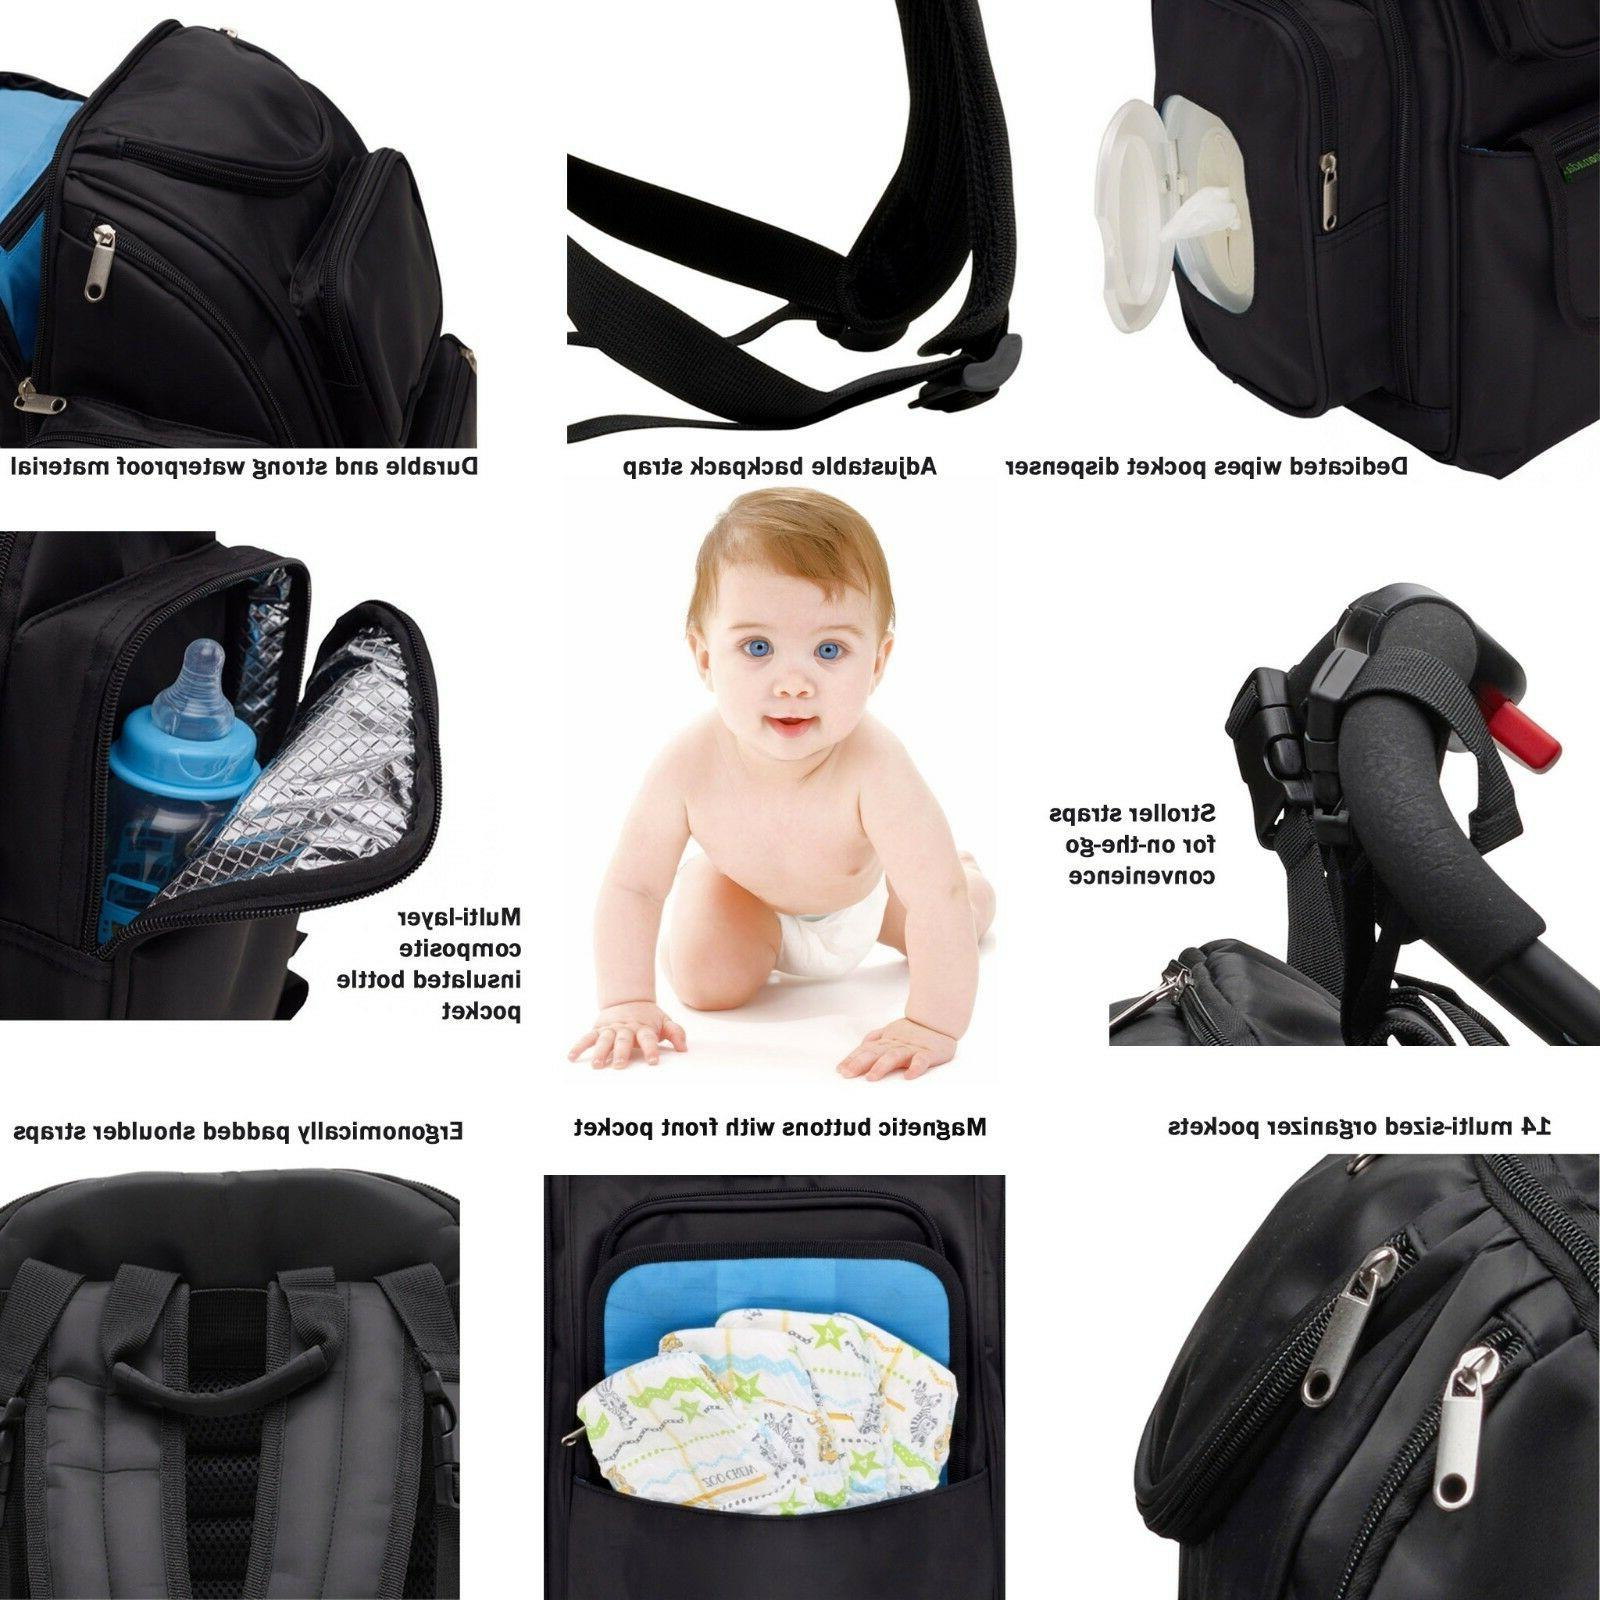 Diaper Backpack Stroller Straps Changing Pad Wipes Dispenser